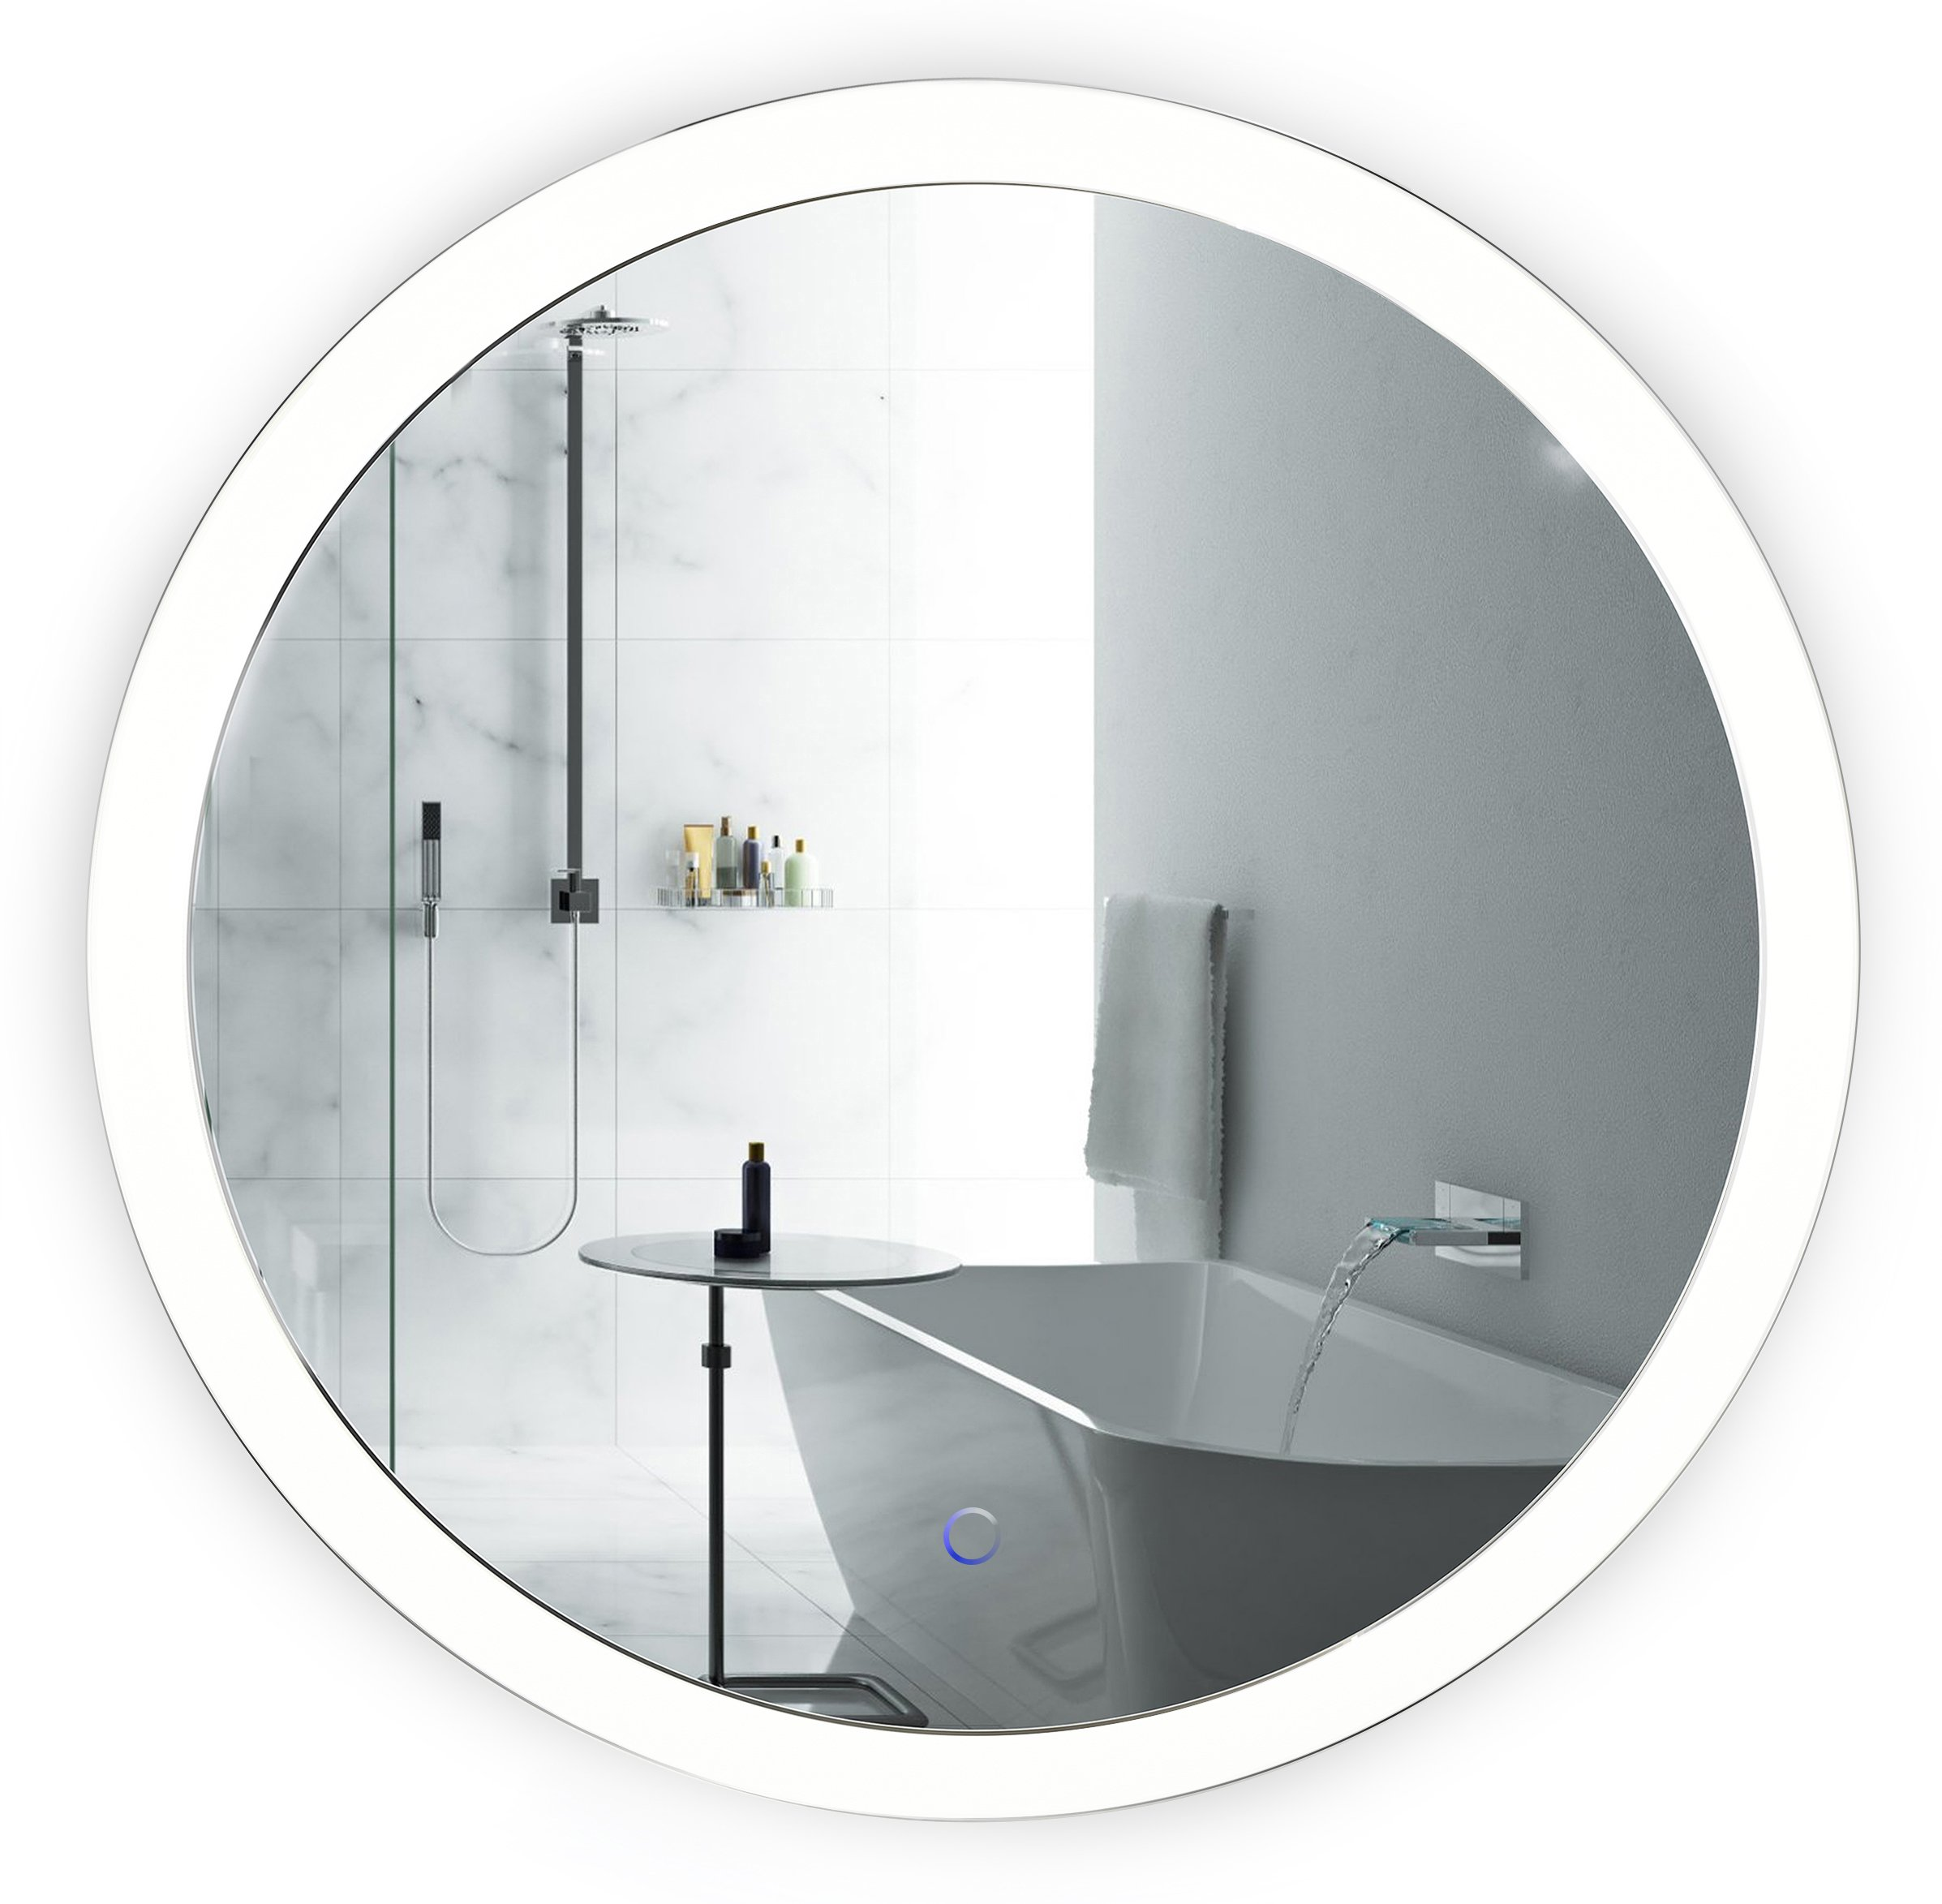 LED Bathroom Round Mirror 27 Inch Diameter | Lighted Vanity Mirror Includes Dimmer and Defogger | Silver Backed Glass